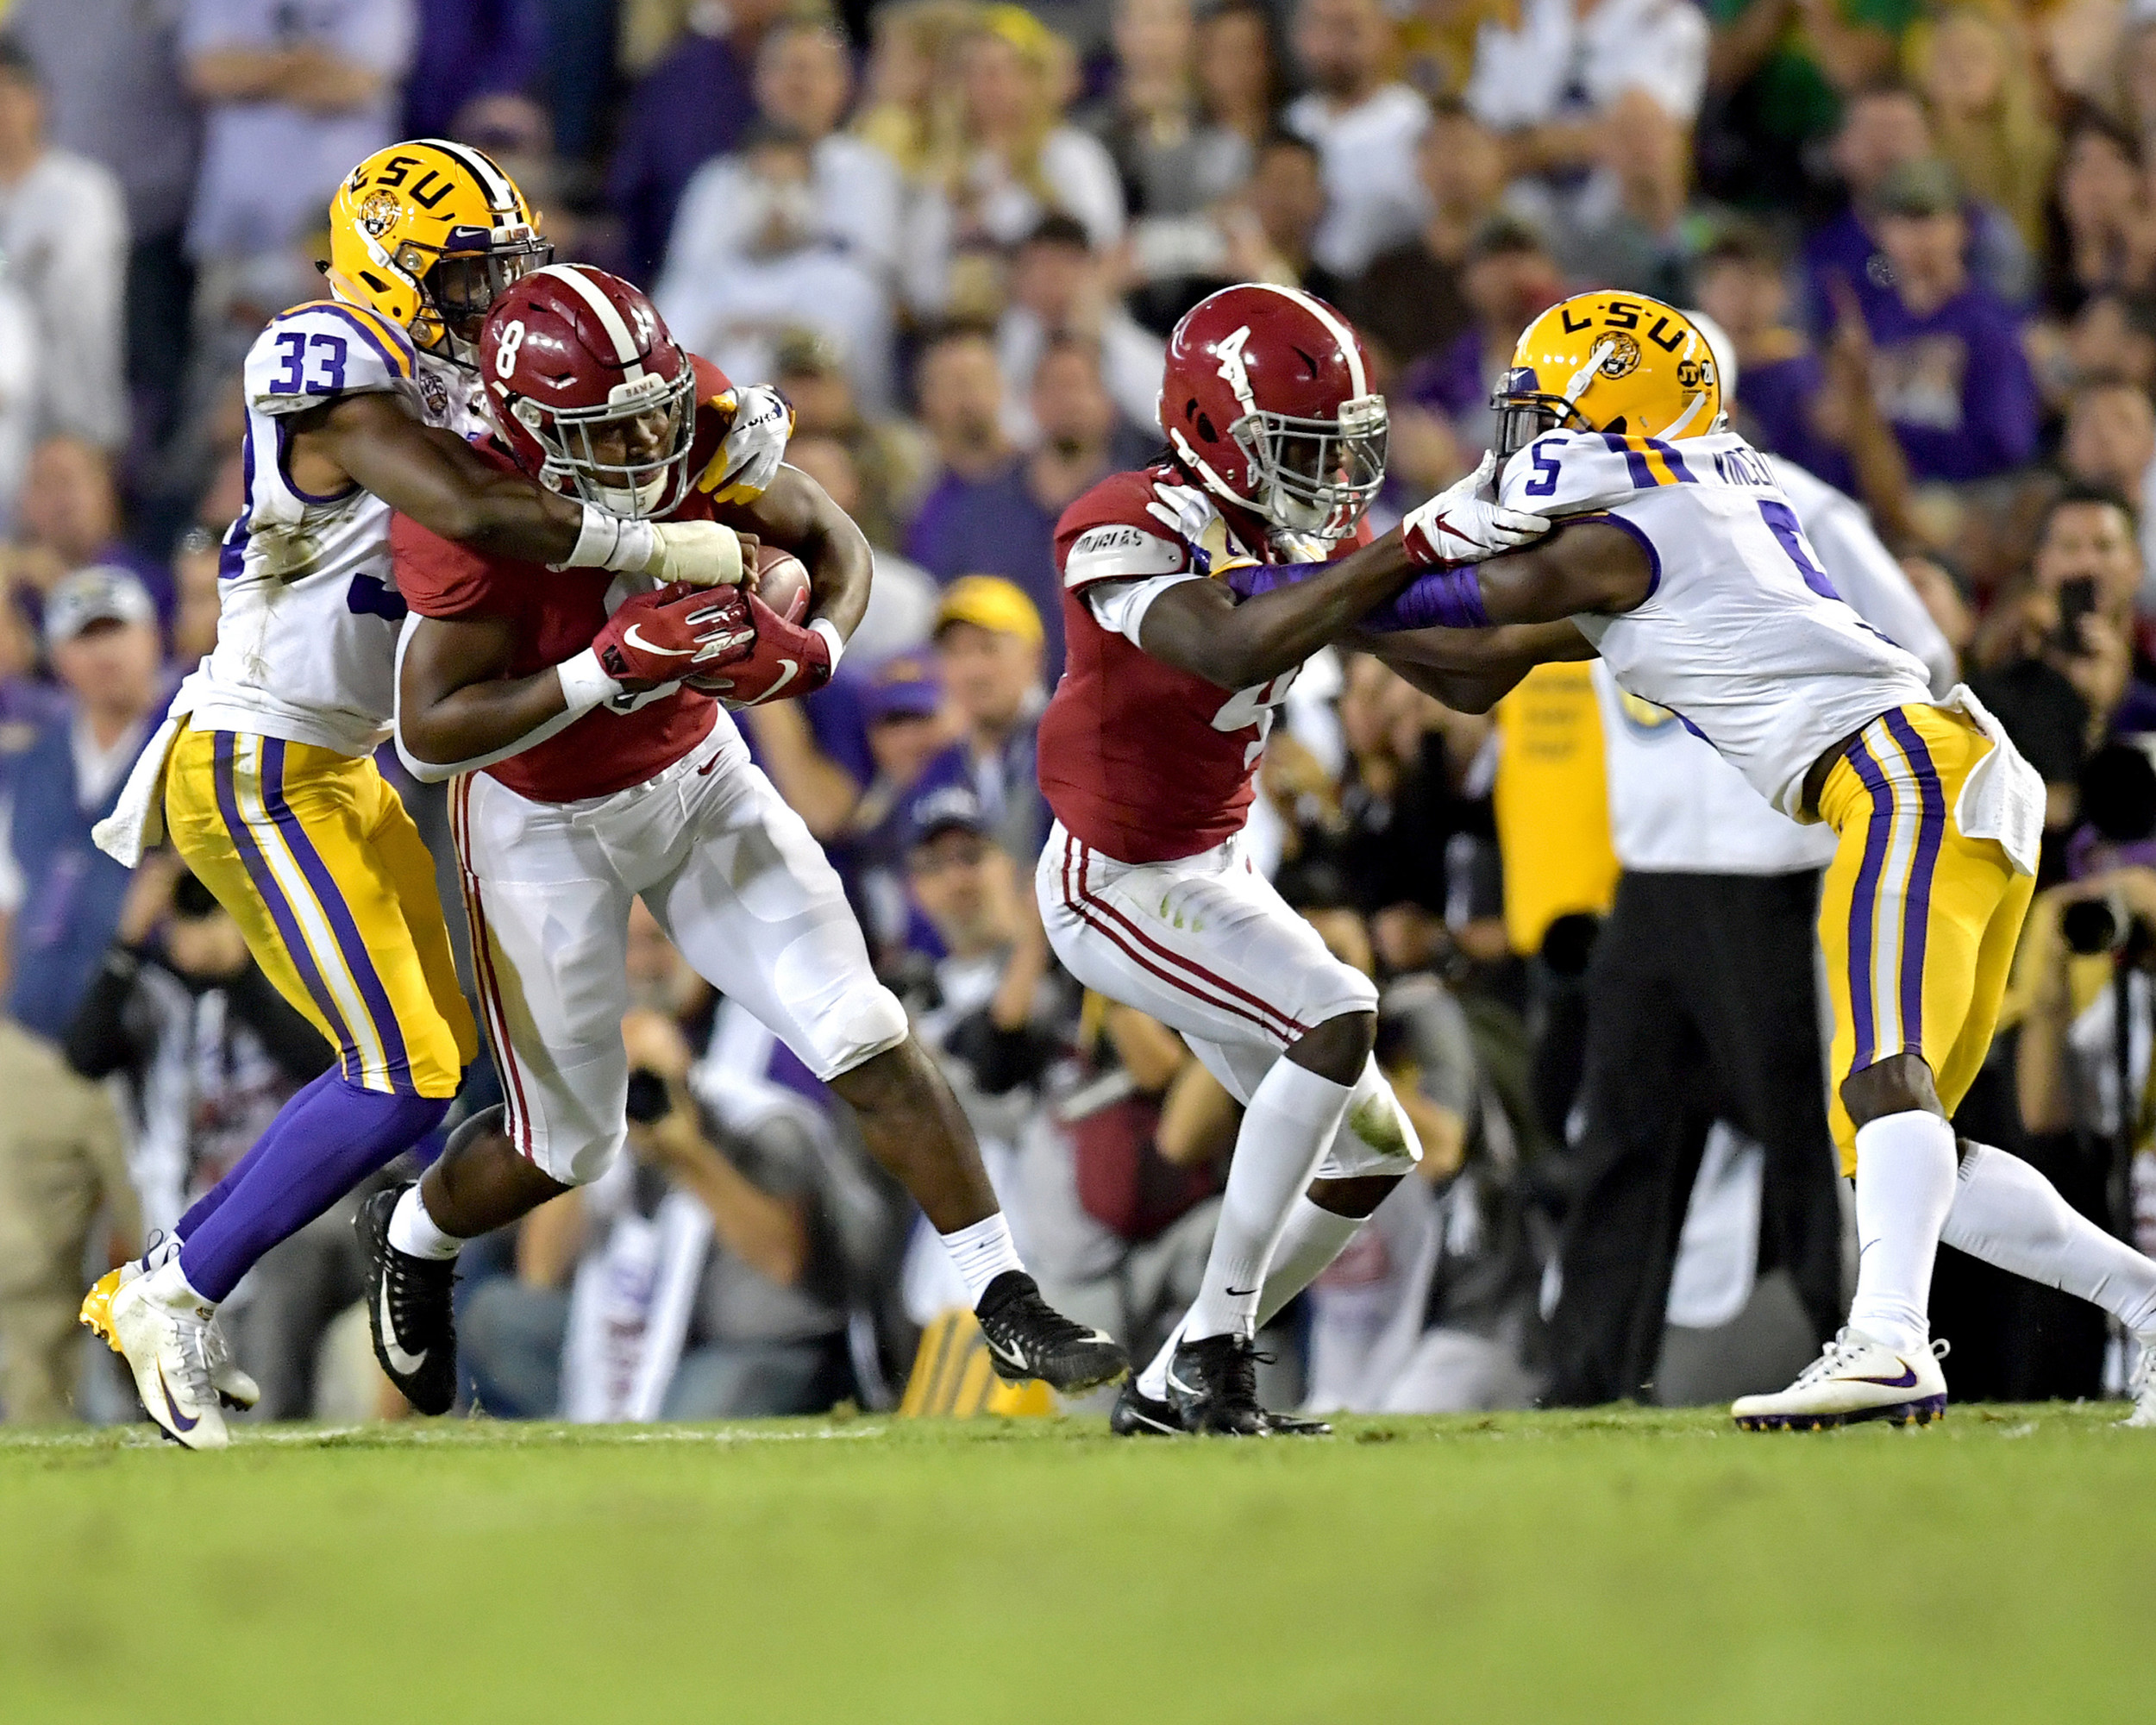 Alabama Crimson Tide running back Josh Jacobs (8) tries to avoid a tackle by LSU Tigers safety Todd Harris Jr. (33) in the first half of an NCAA football game Saturday, November 3, 2018, at Tiger Stadium in Baton Rouge, La.  Alabama wins 29-0. (Photo by Lee Walls)